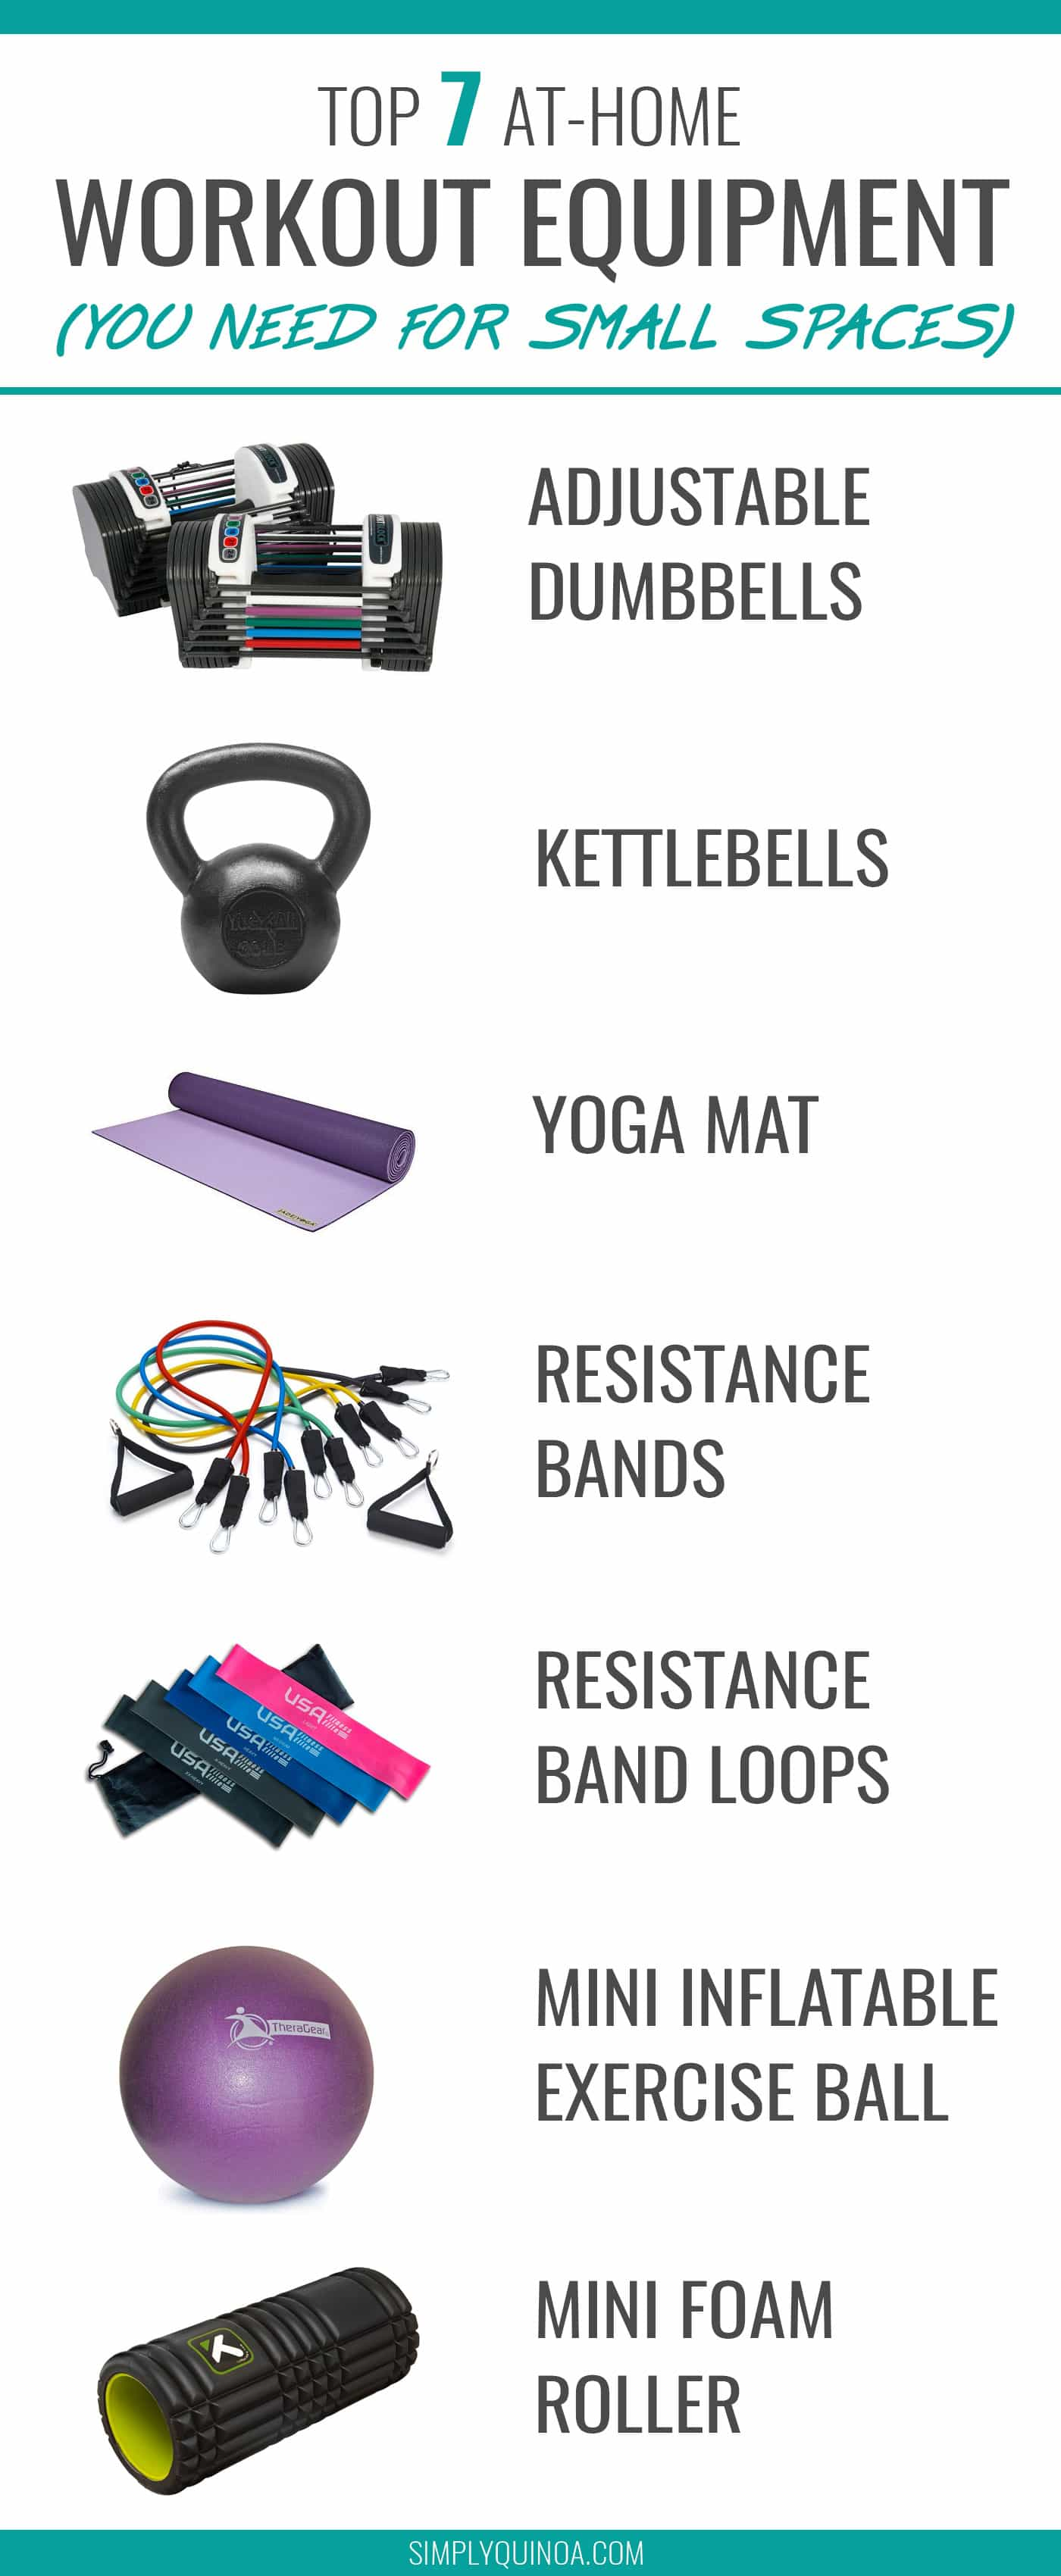 Best at home exercise equipment for small spaces